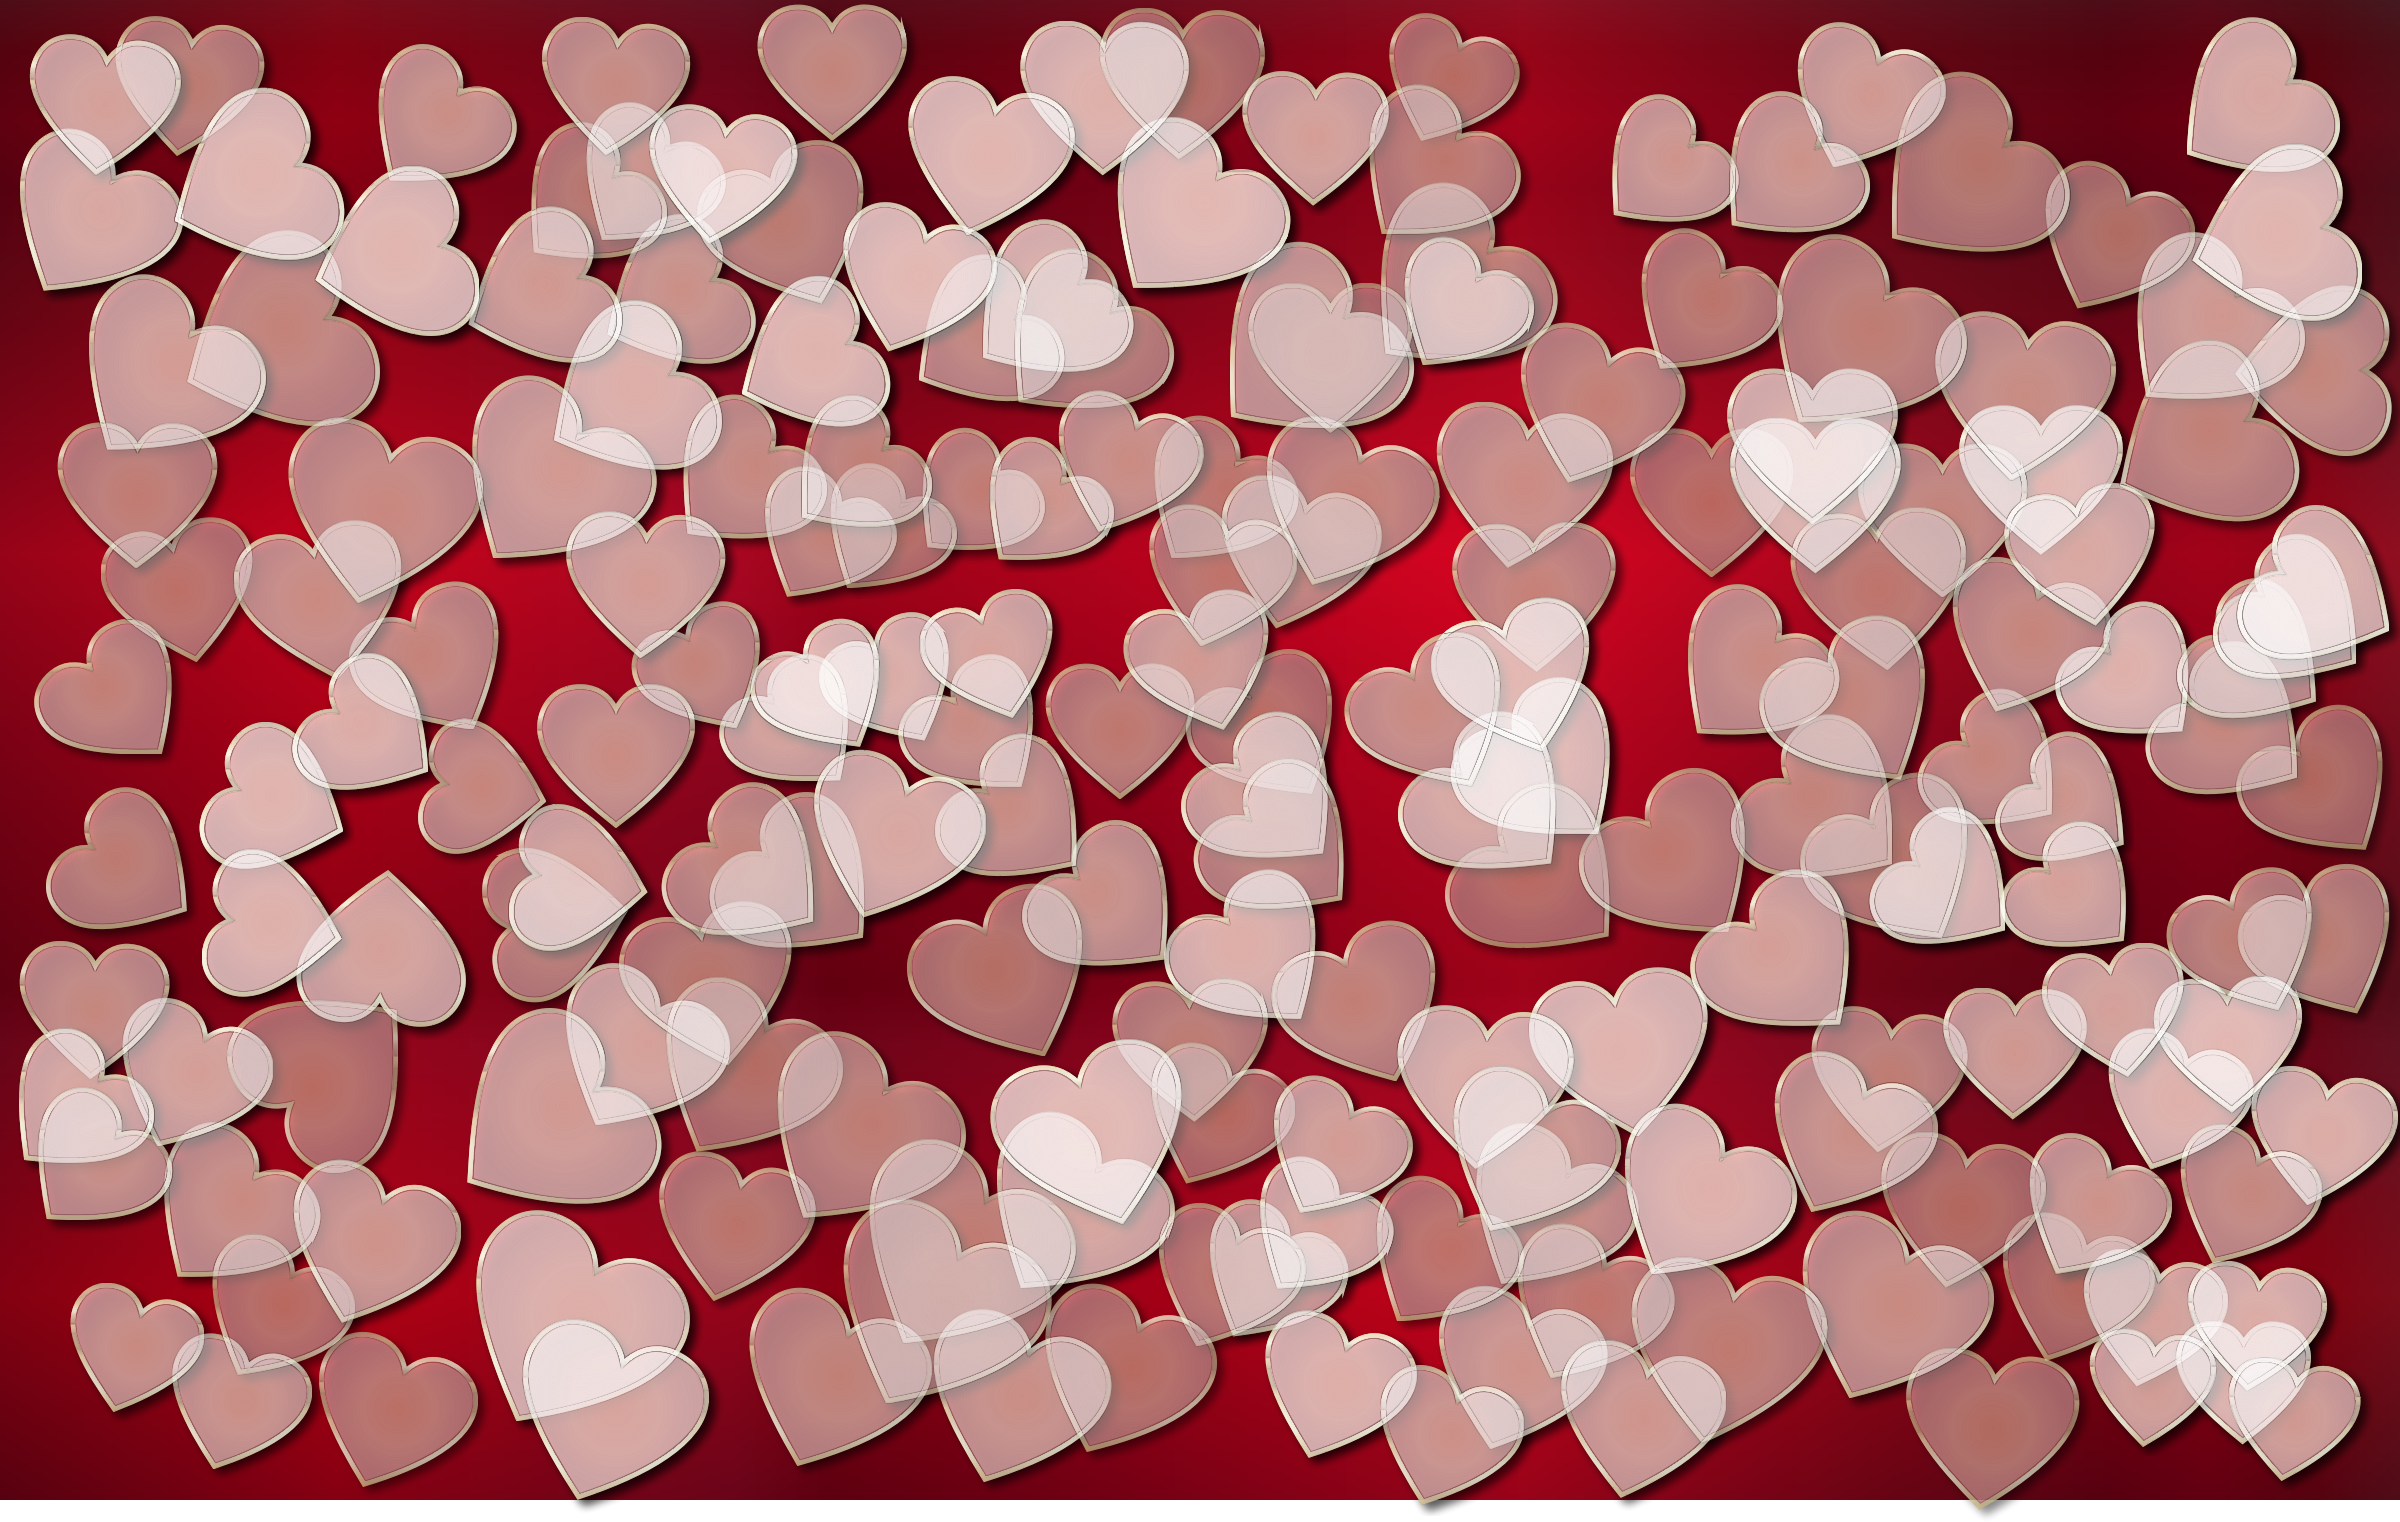 Translucent Hearts Background 3 by GDJ